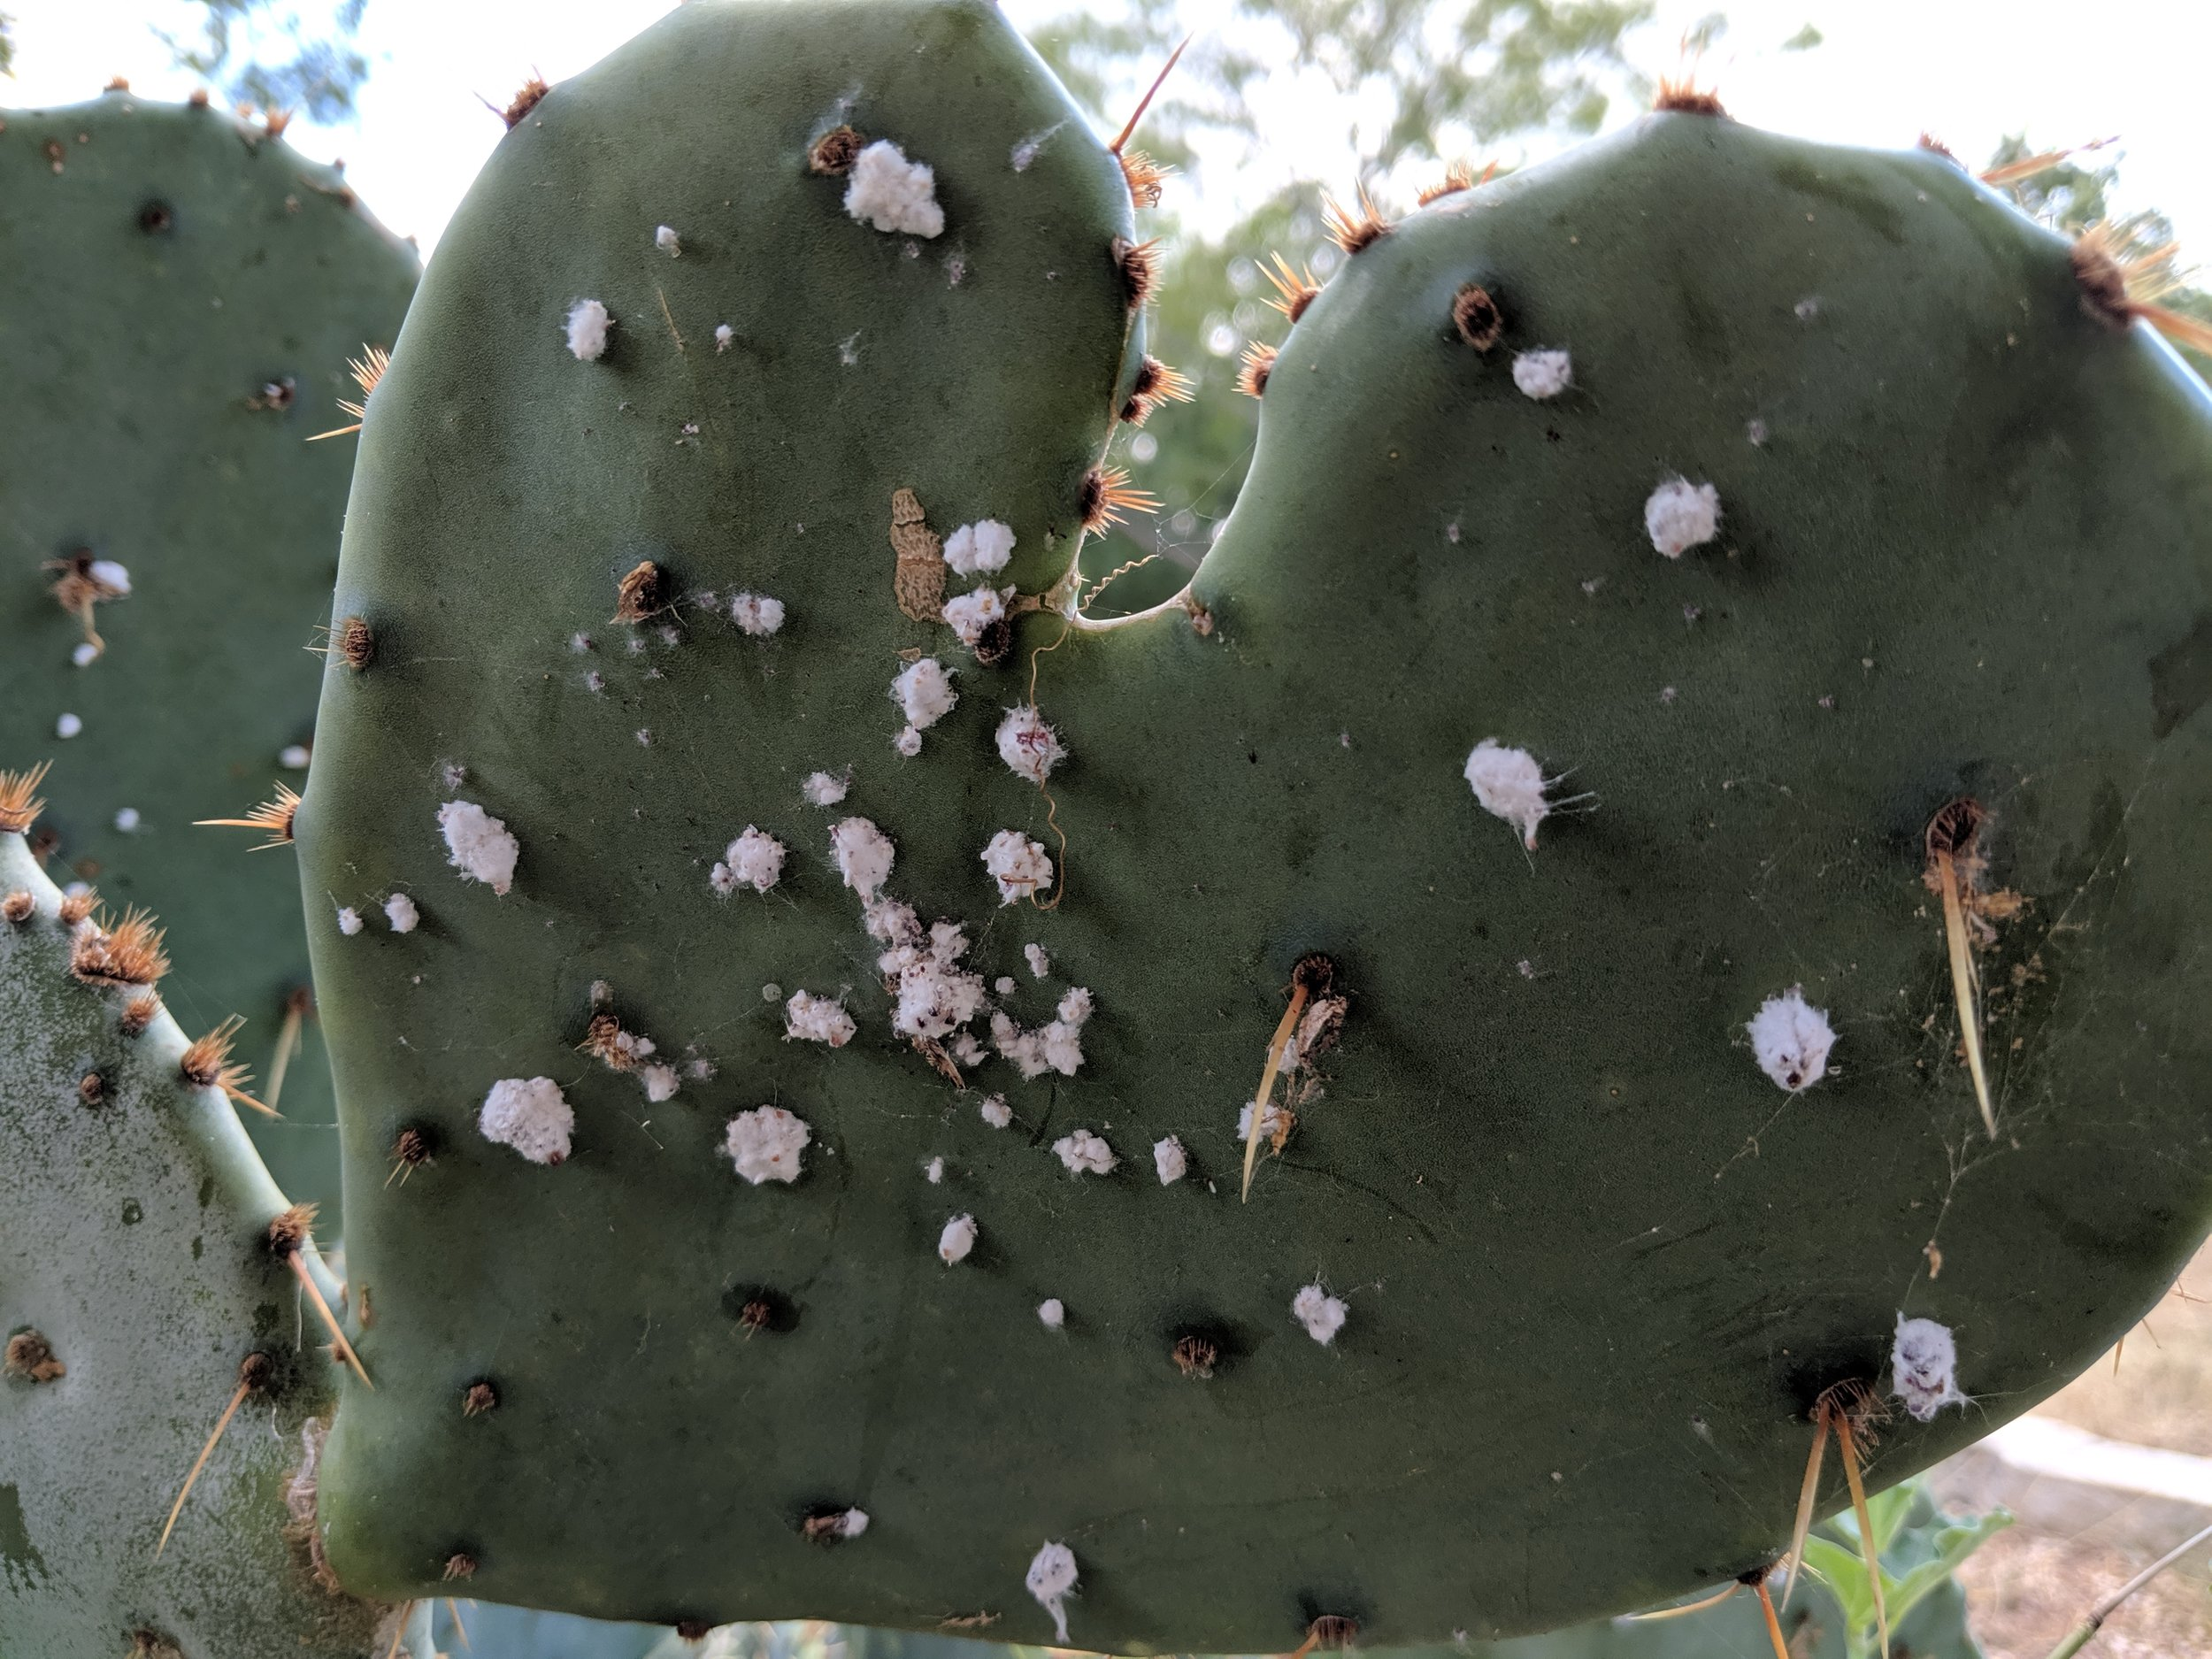 Cochineal on a prickly pear cactus.